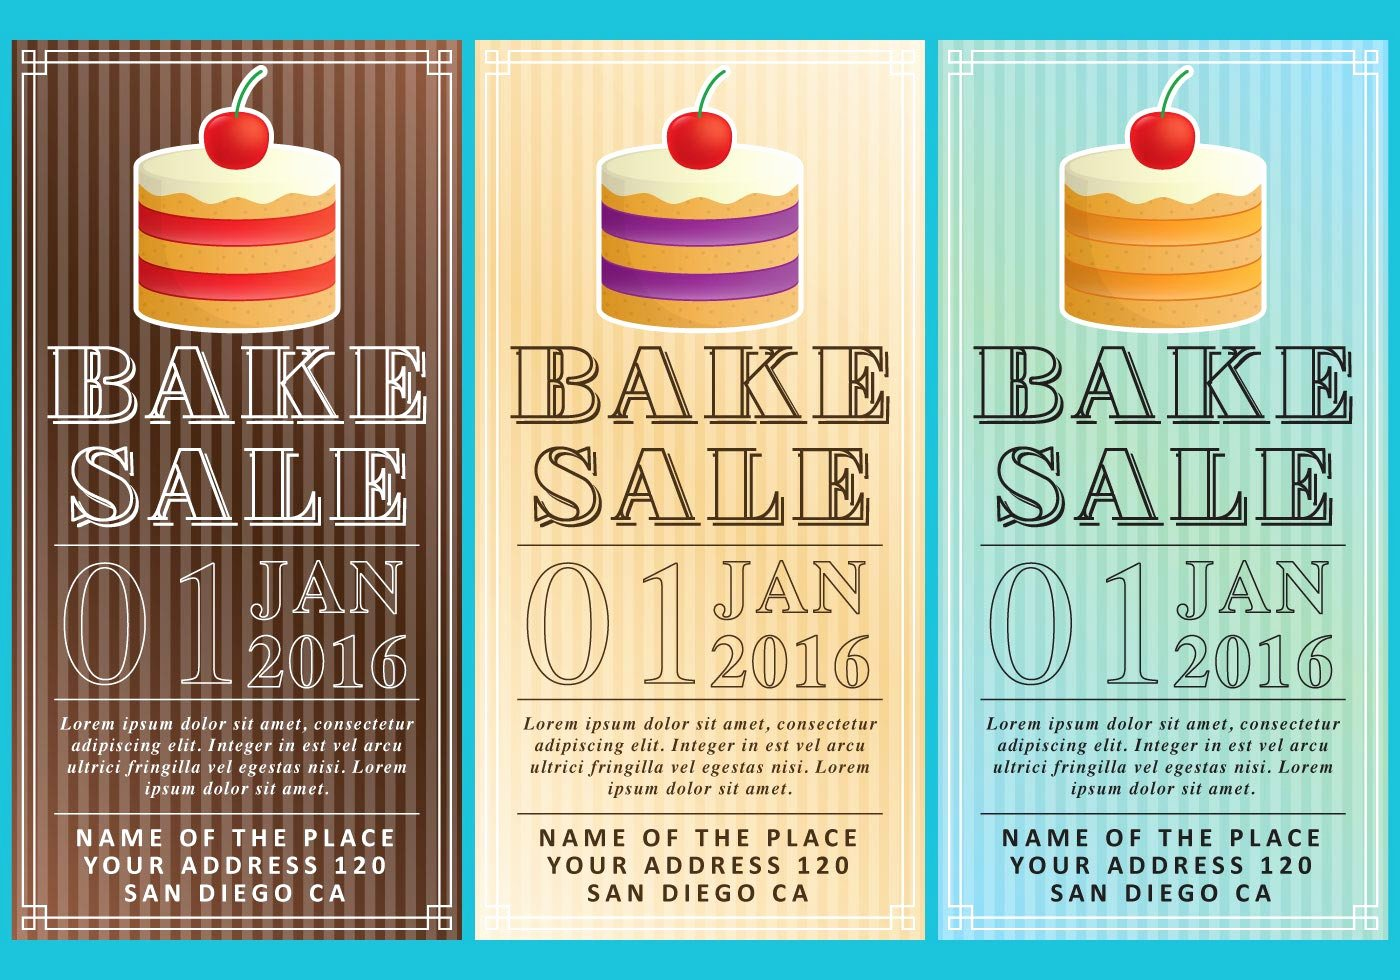 Bake Sale Fundraiser Flyer Template New Bake Sale Flyers Download Free Vectors Clipart Graphics & Vector Art